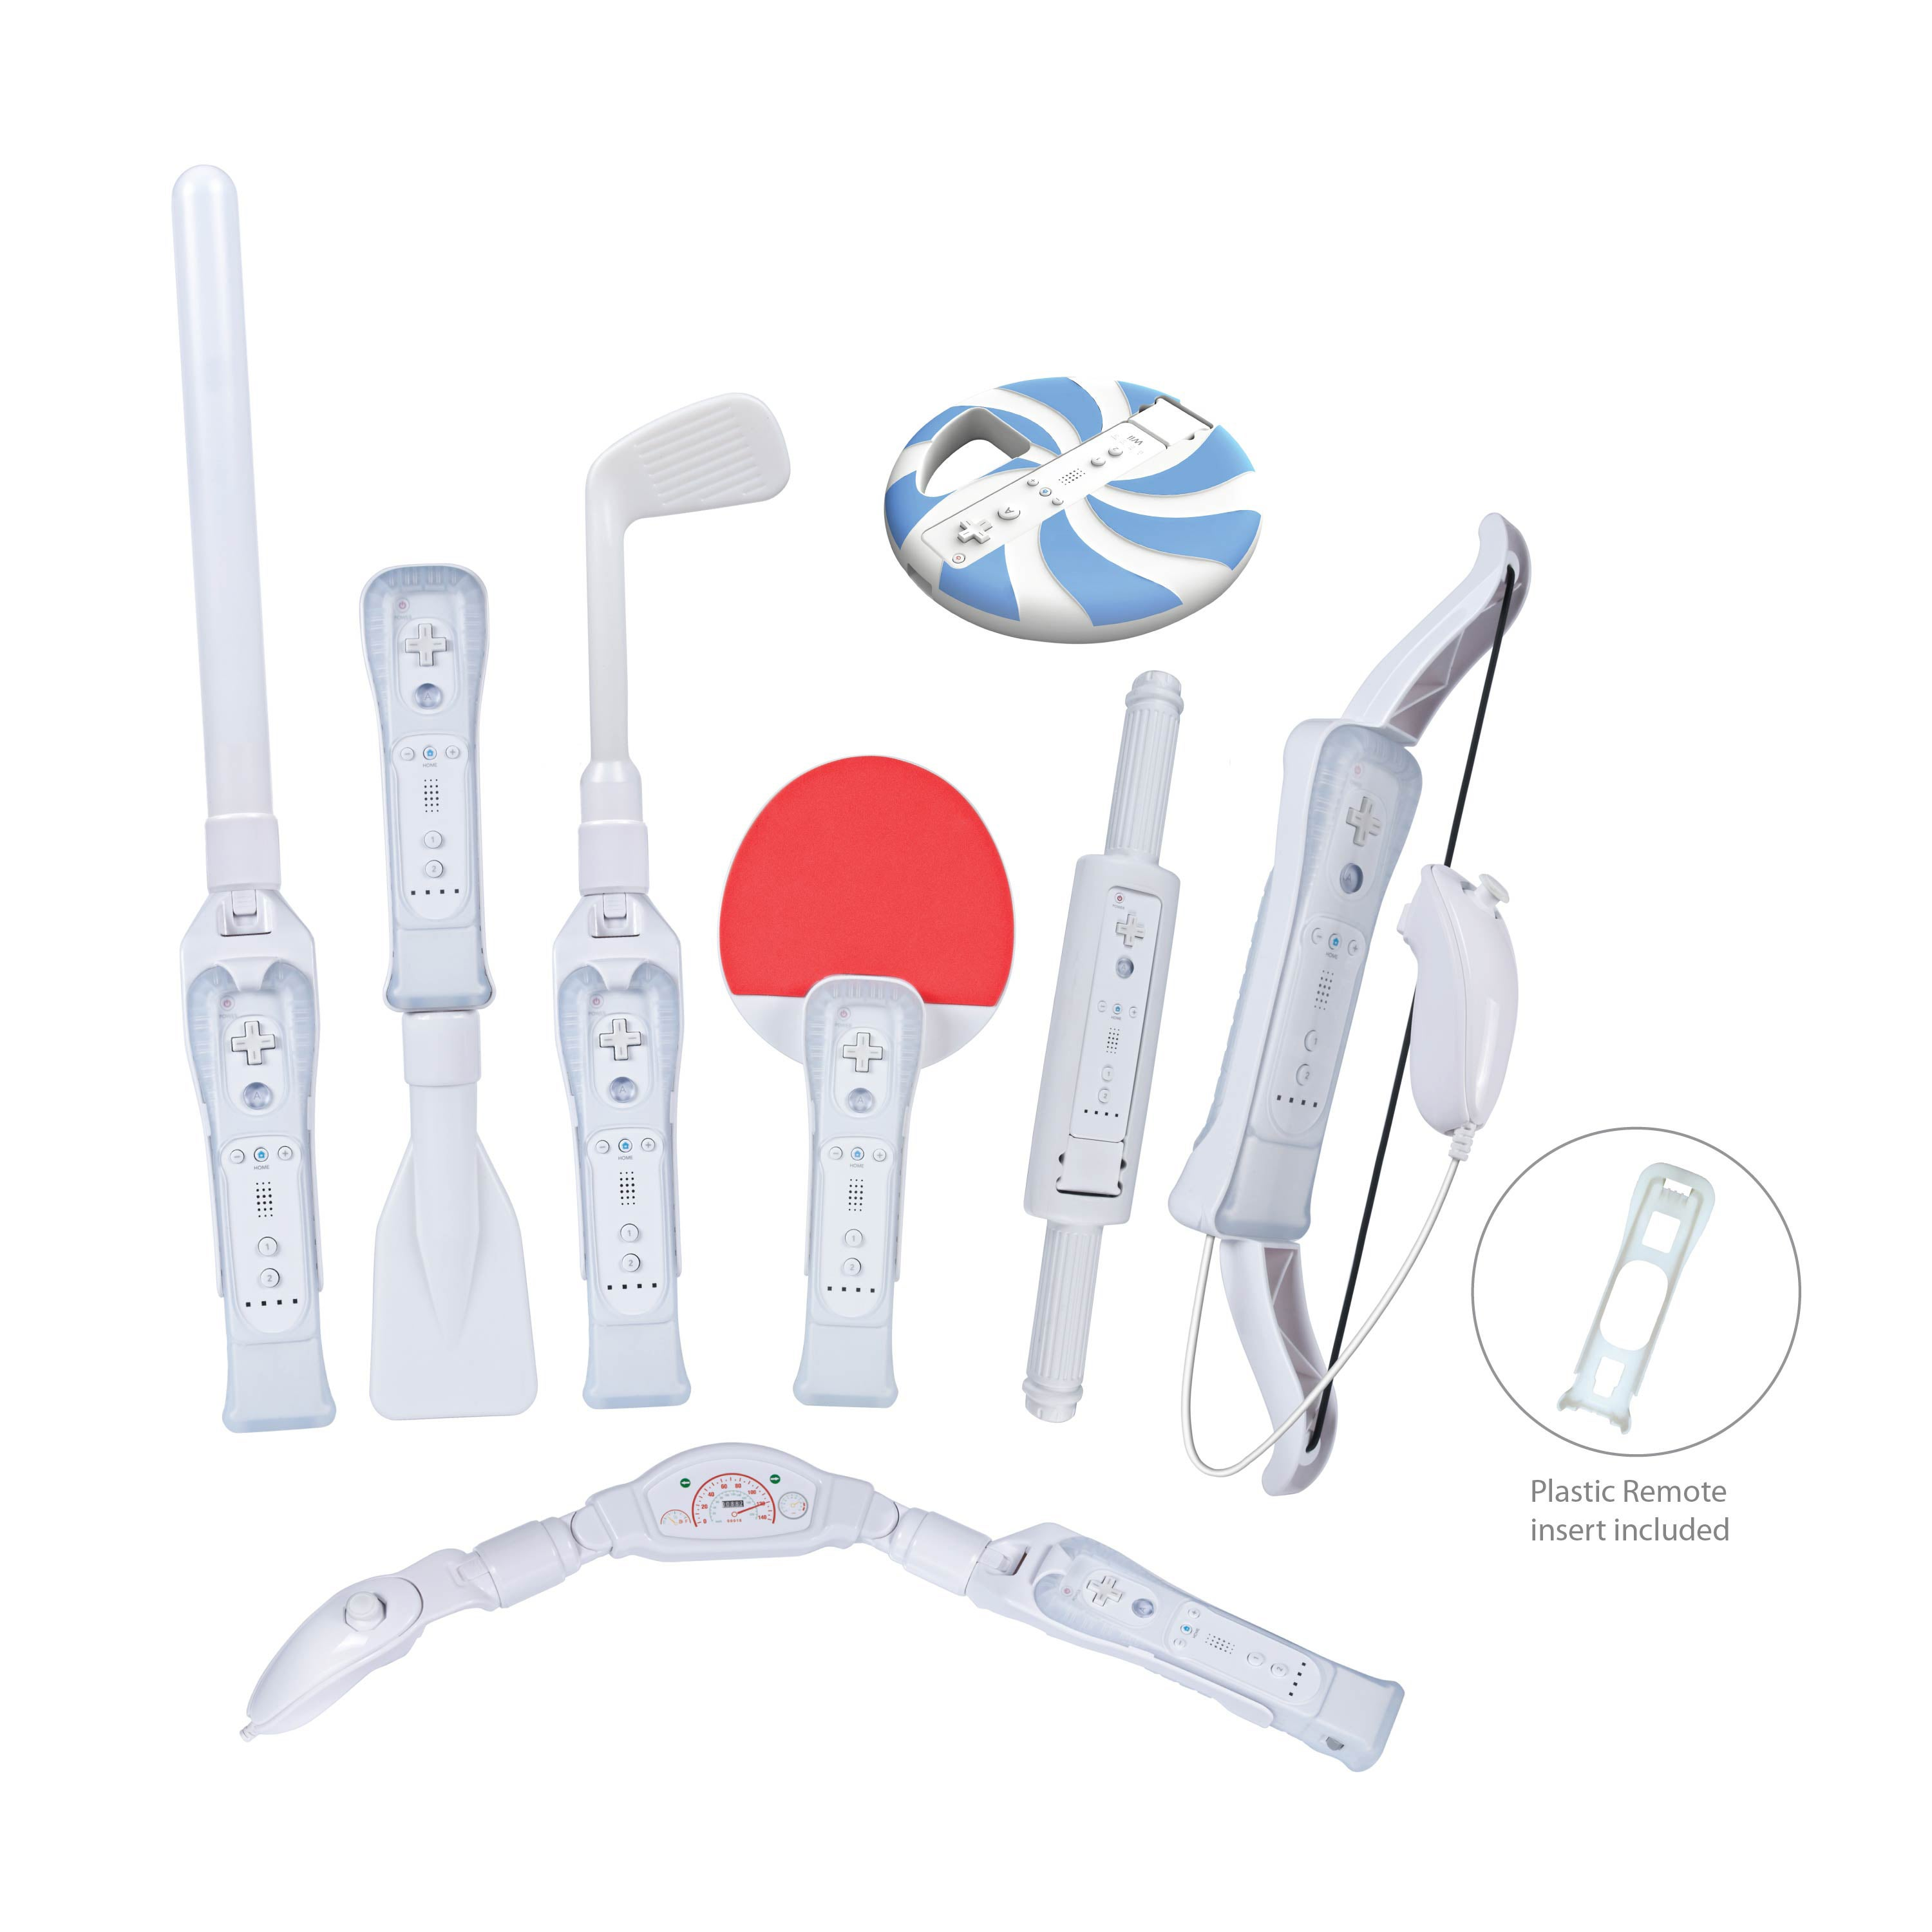 8 in 1 Sports Pack for Wii Sport Resort.